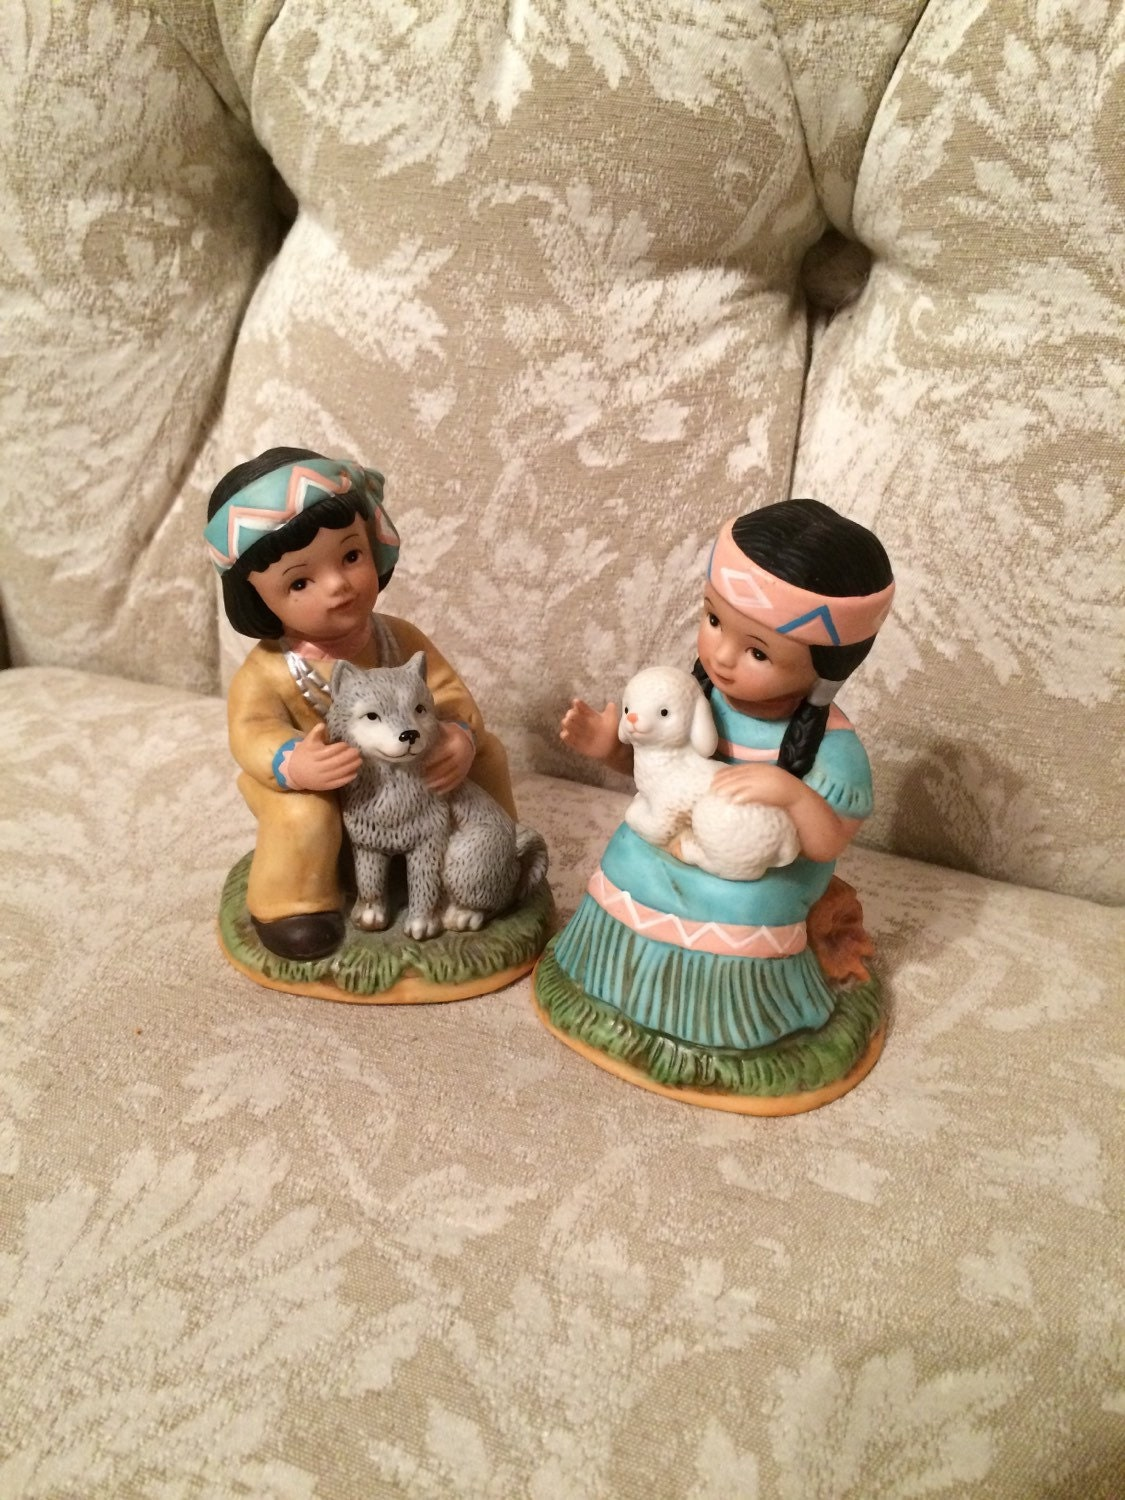 home interior native american children figurines holding a homco home interior figurines shop collectibles online daily